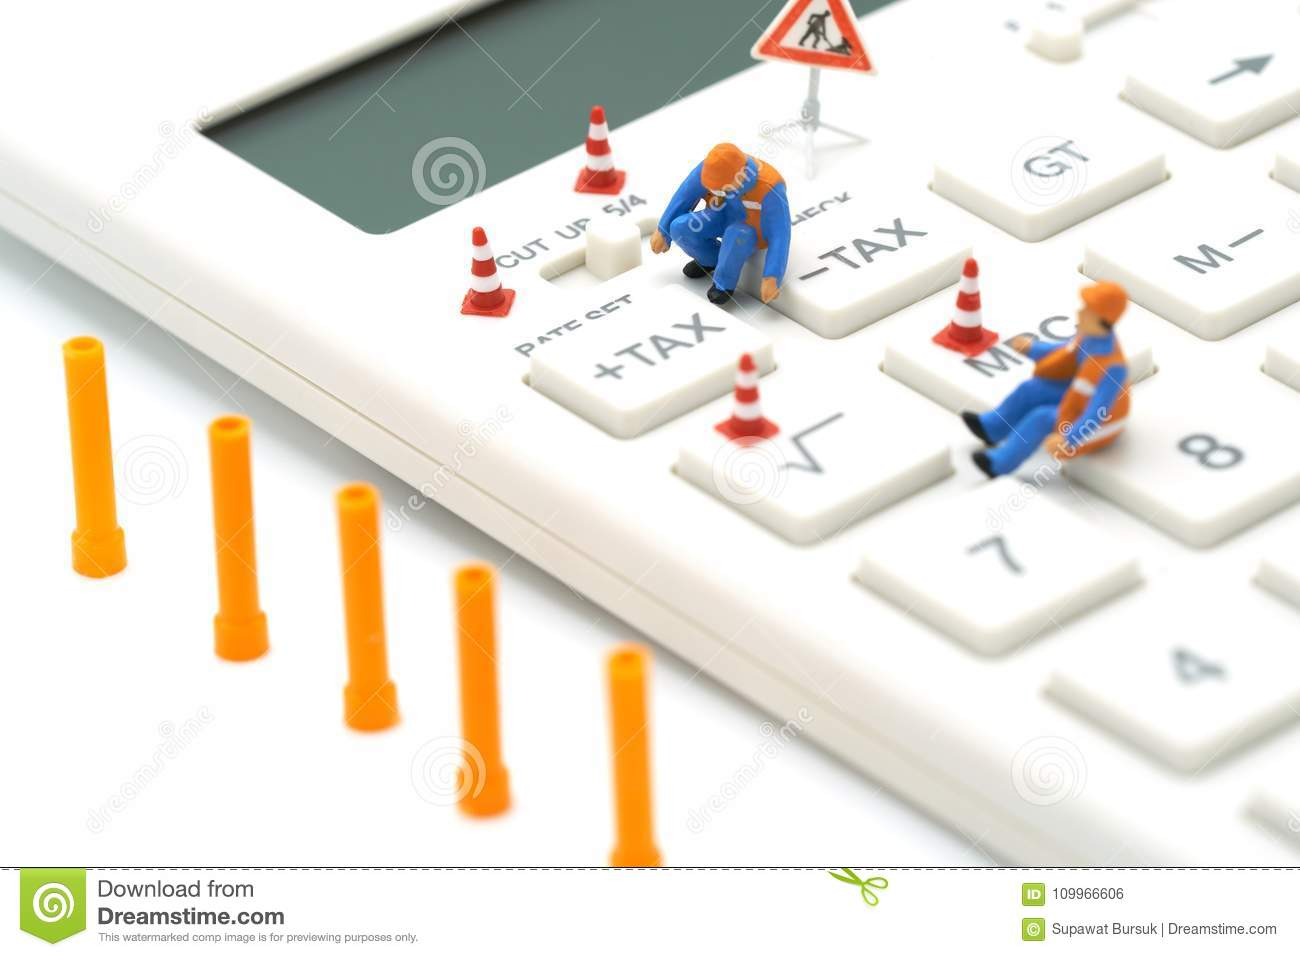 Miniature people Construction worker Keypad TAX button For tax calculation. Easy to calculate. on White calculator on white backgr